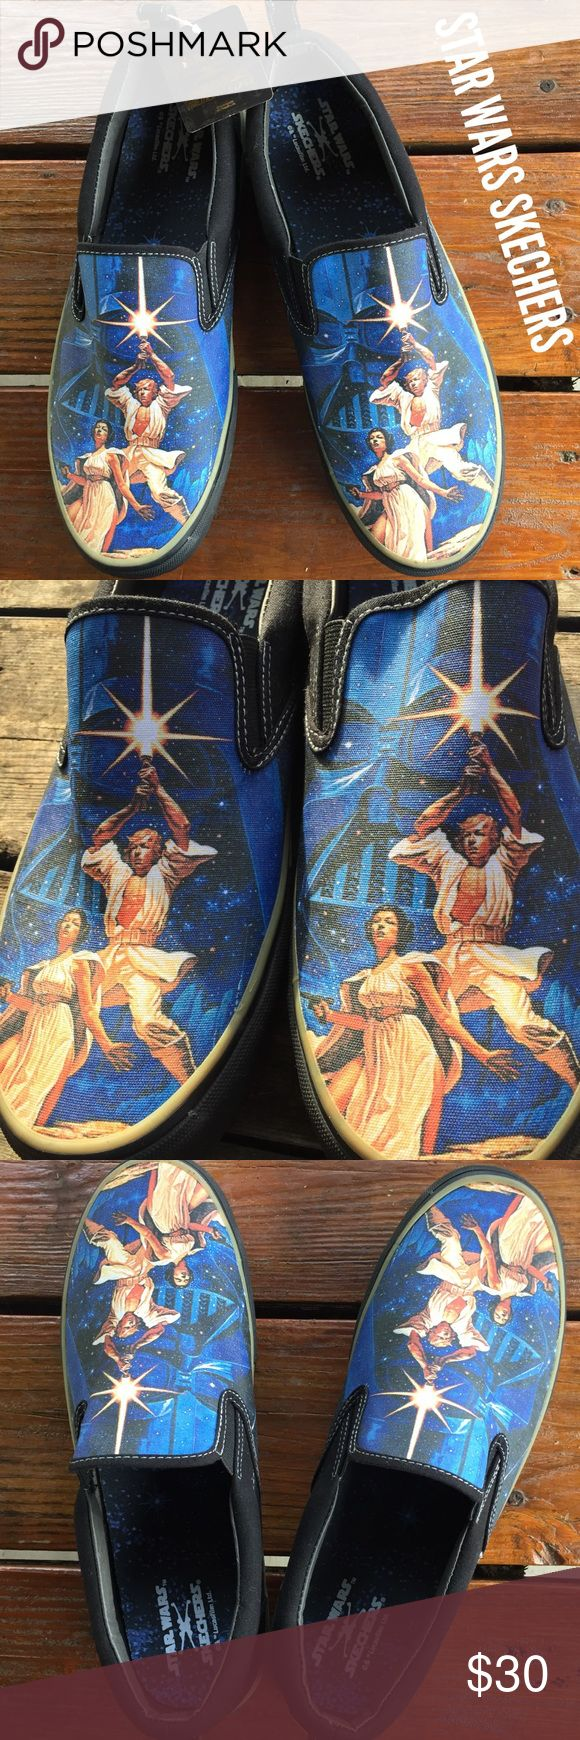 STAR WARS NWT Skechers Men's Slip on Shoes 11 New! New with Tags! Men's STAR WARS Skechers slip on memory foam shoes, canvas uppers. Movie poster, The Menace, a New Hope. Great find for the Star Wars fan! In perfect immaculate condition with black & gold Star Wars tag attached!  Men's size 11.  (#605) Skechers Shoes Loafers & Slip-Ons